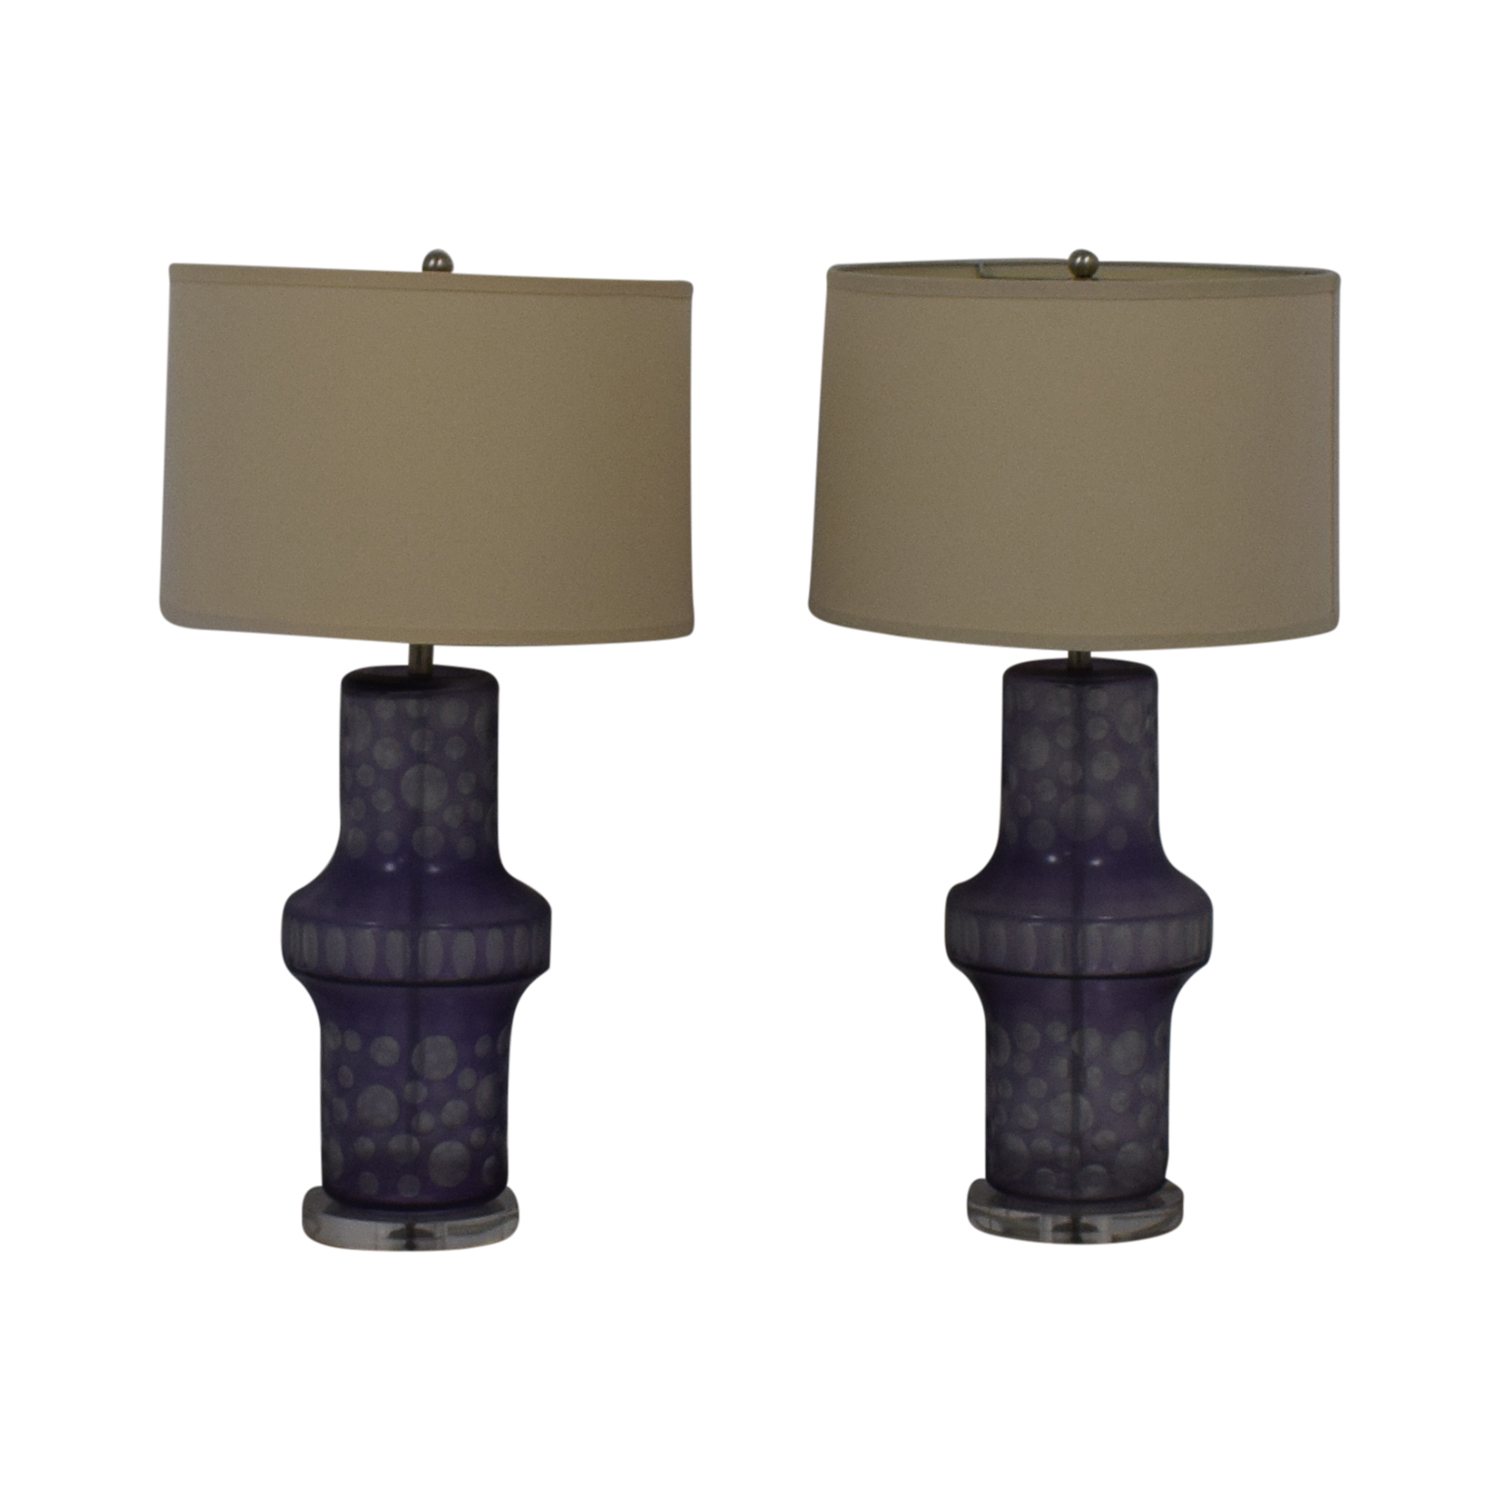 Decorative Table Lamps dimensions